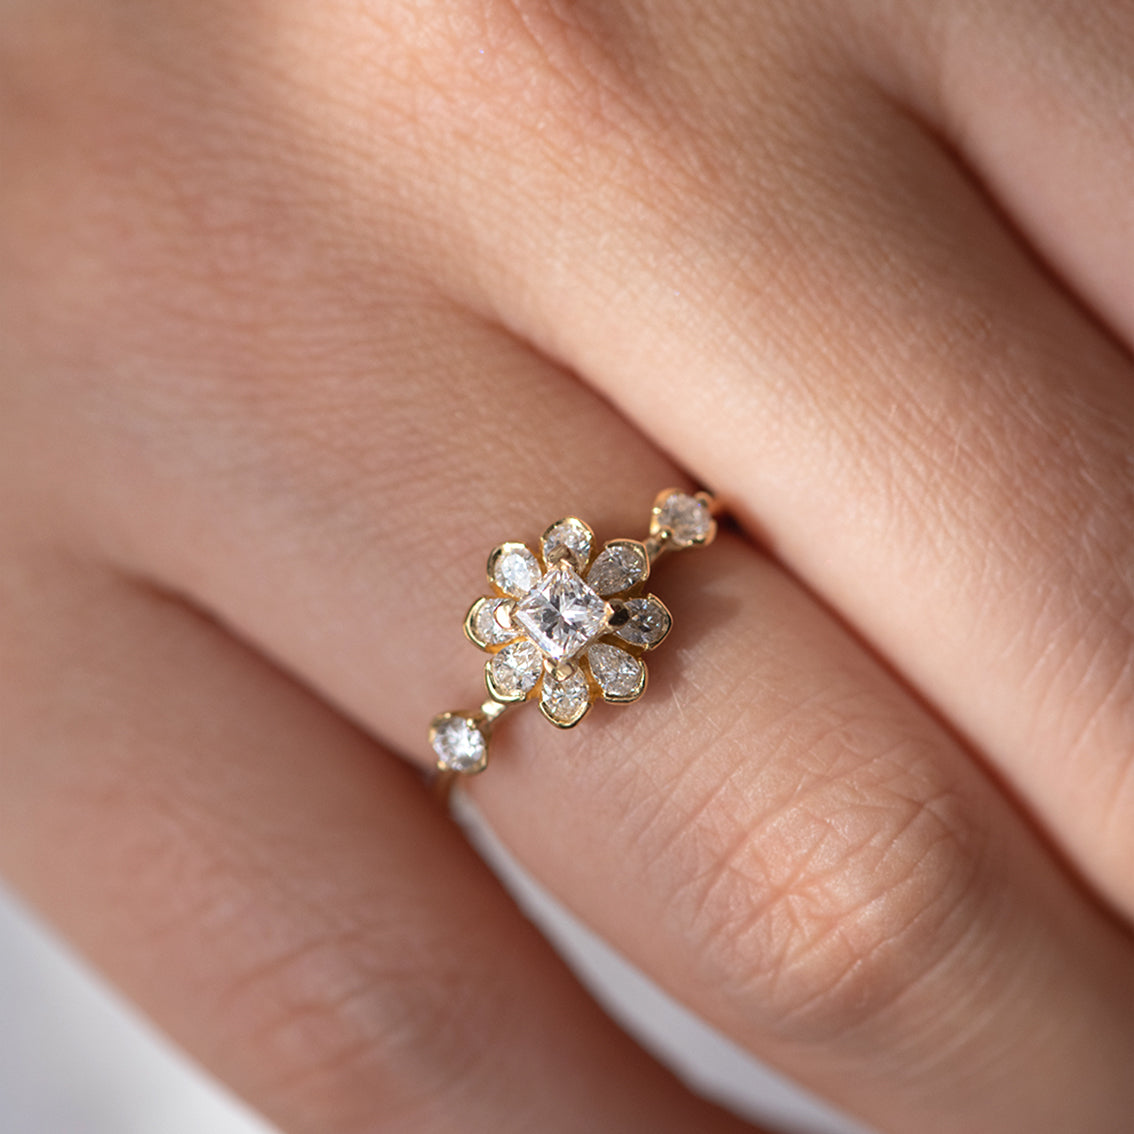 Flower Diamond Engagement Ring on finger